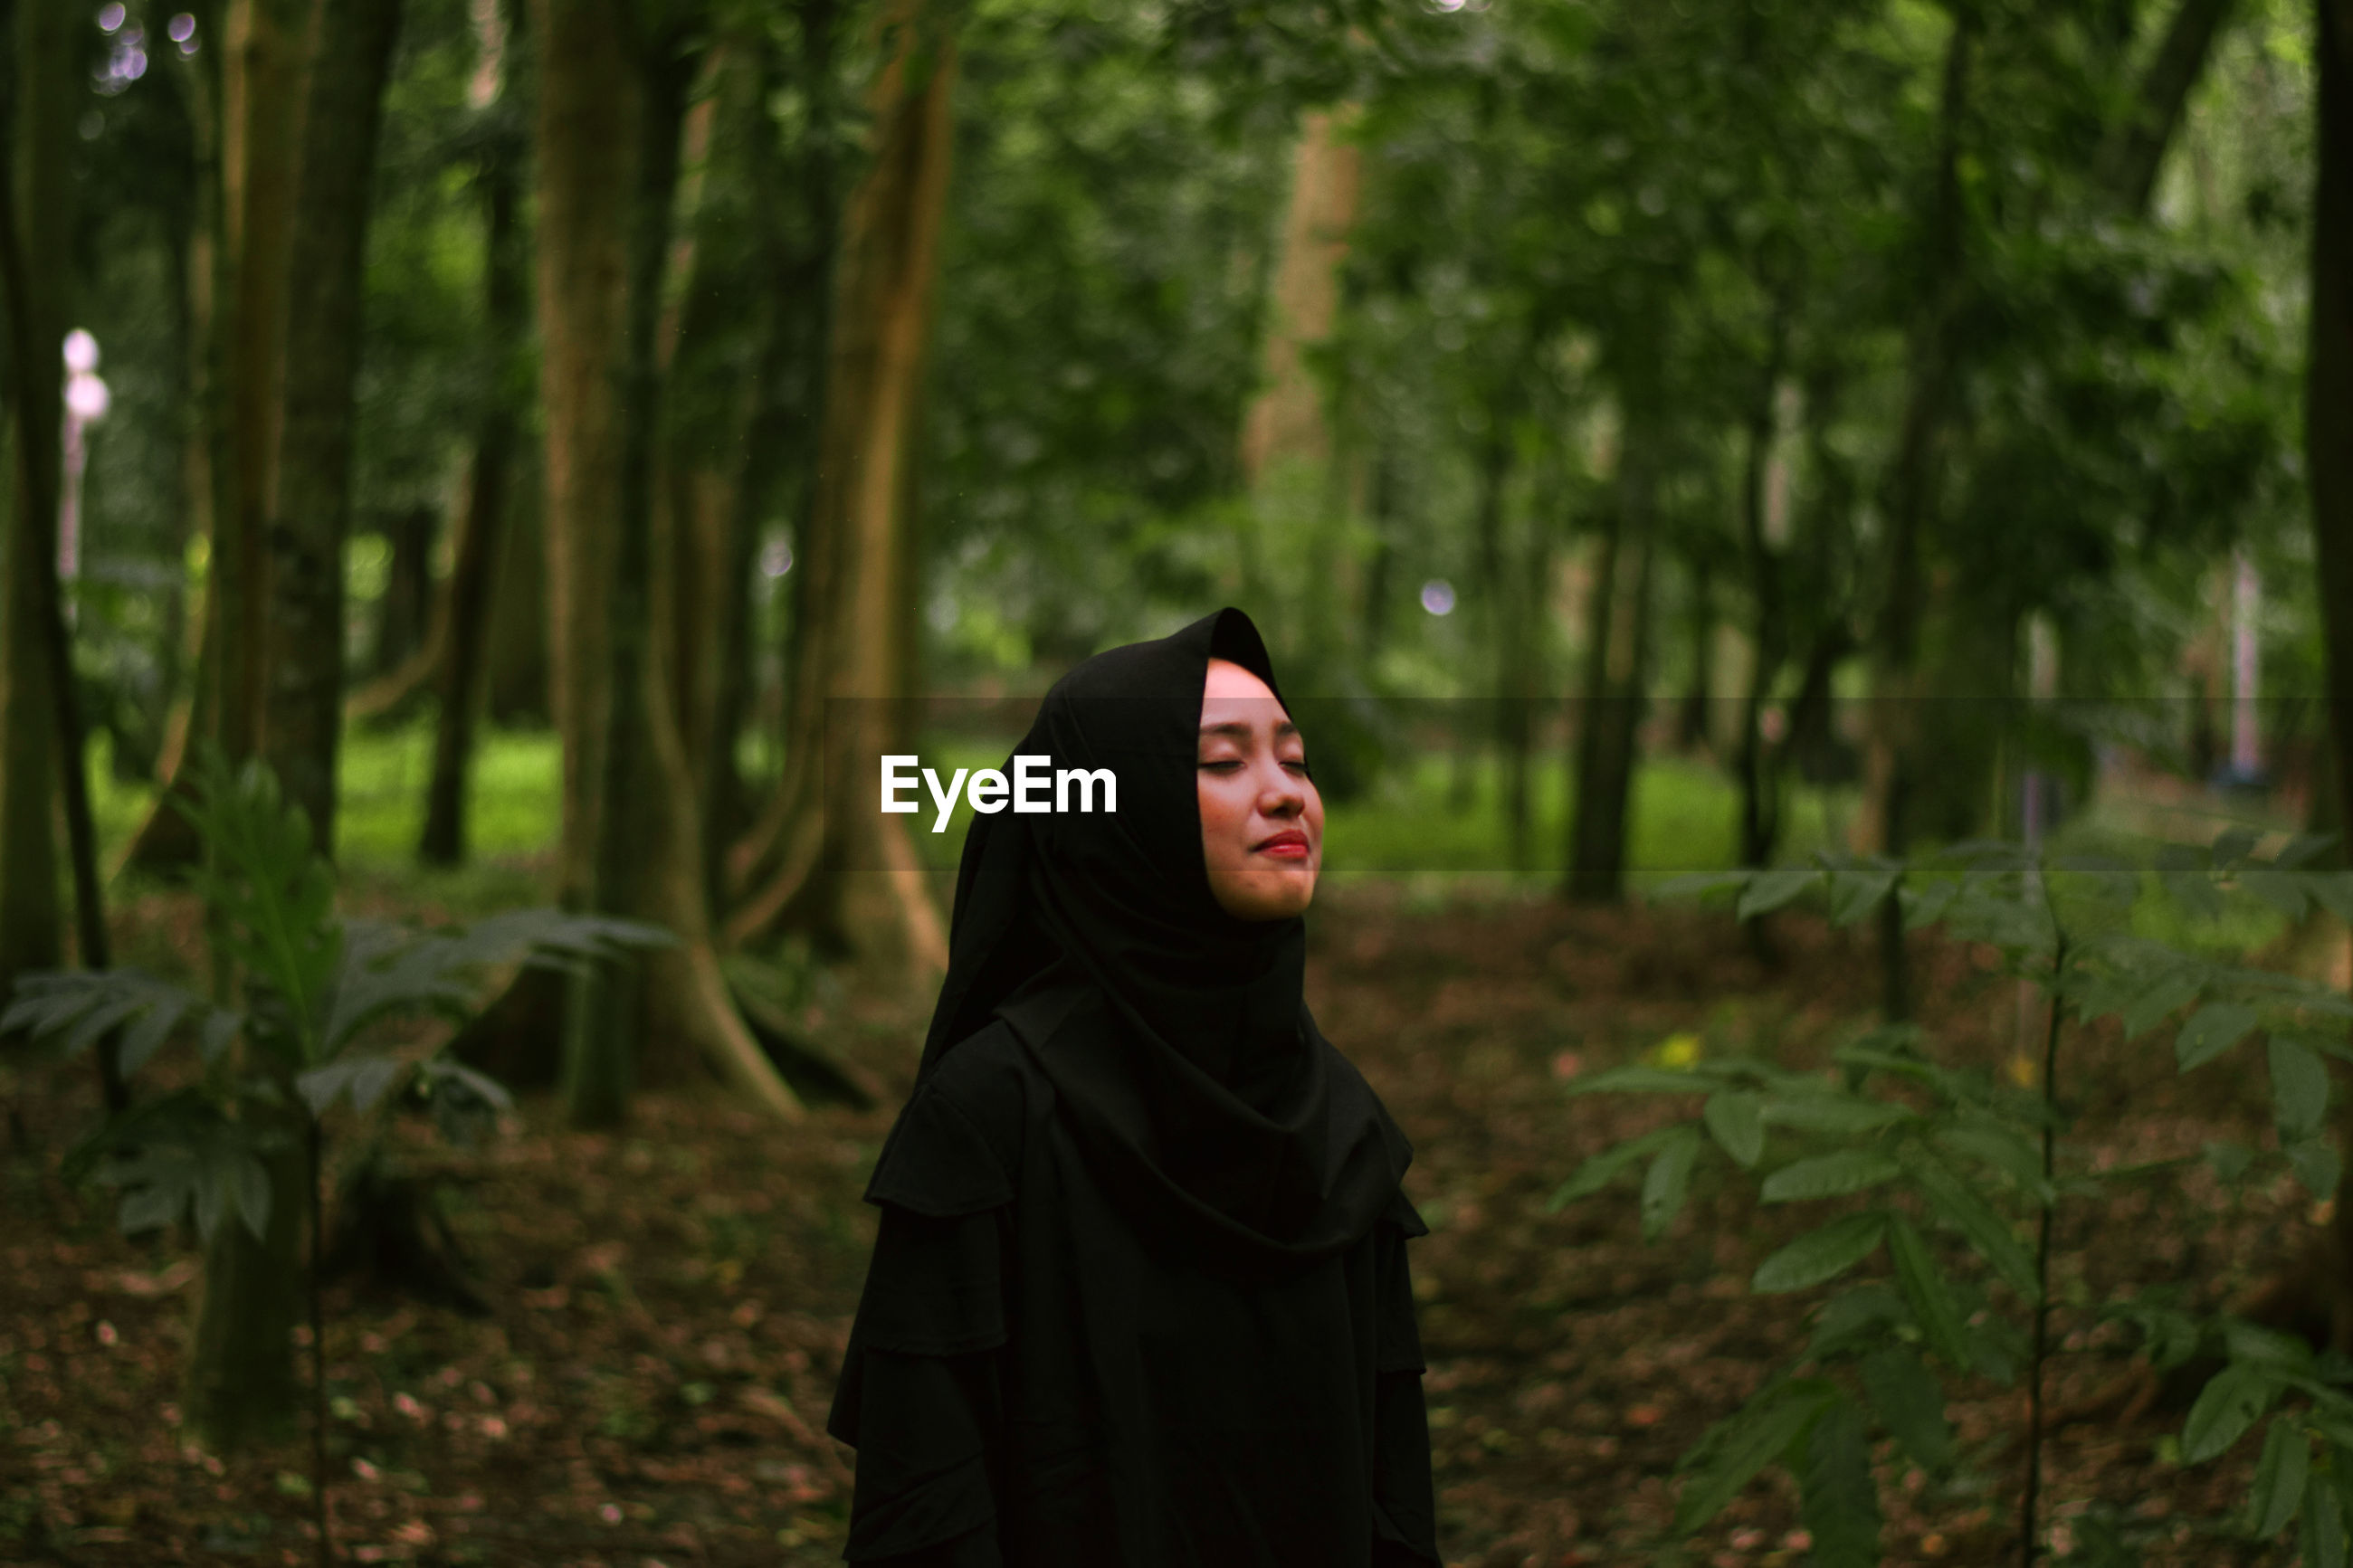 Woman with eyes closed standing against trees in forest